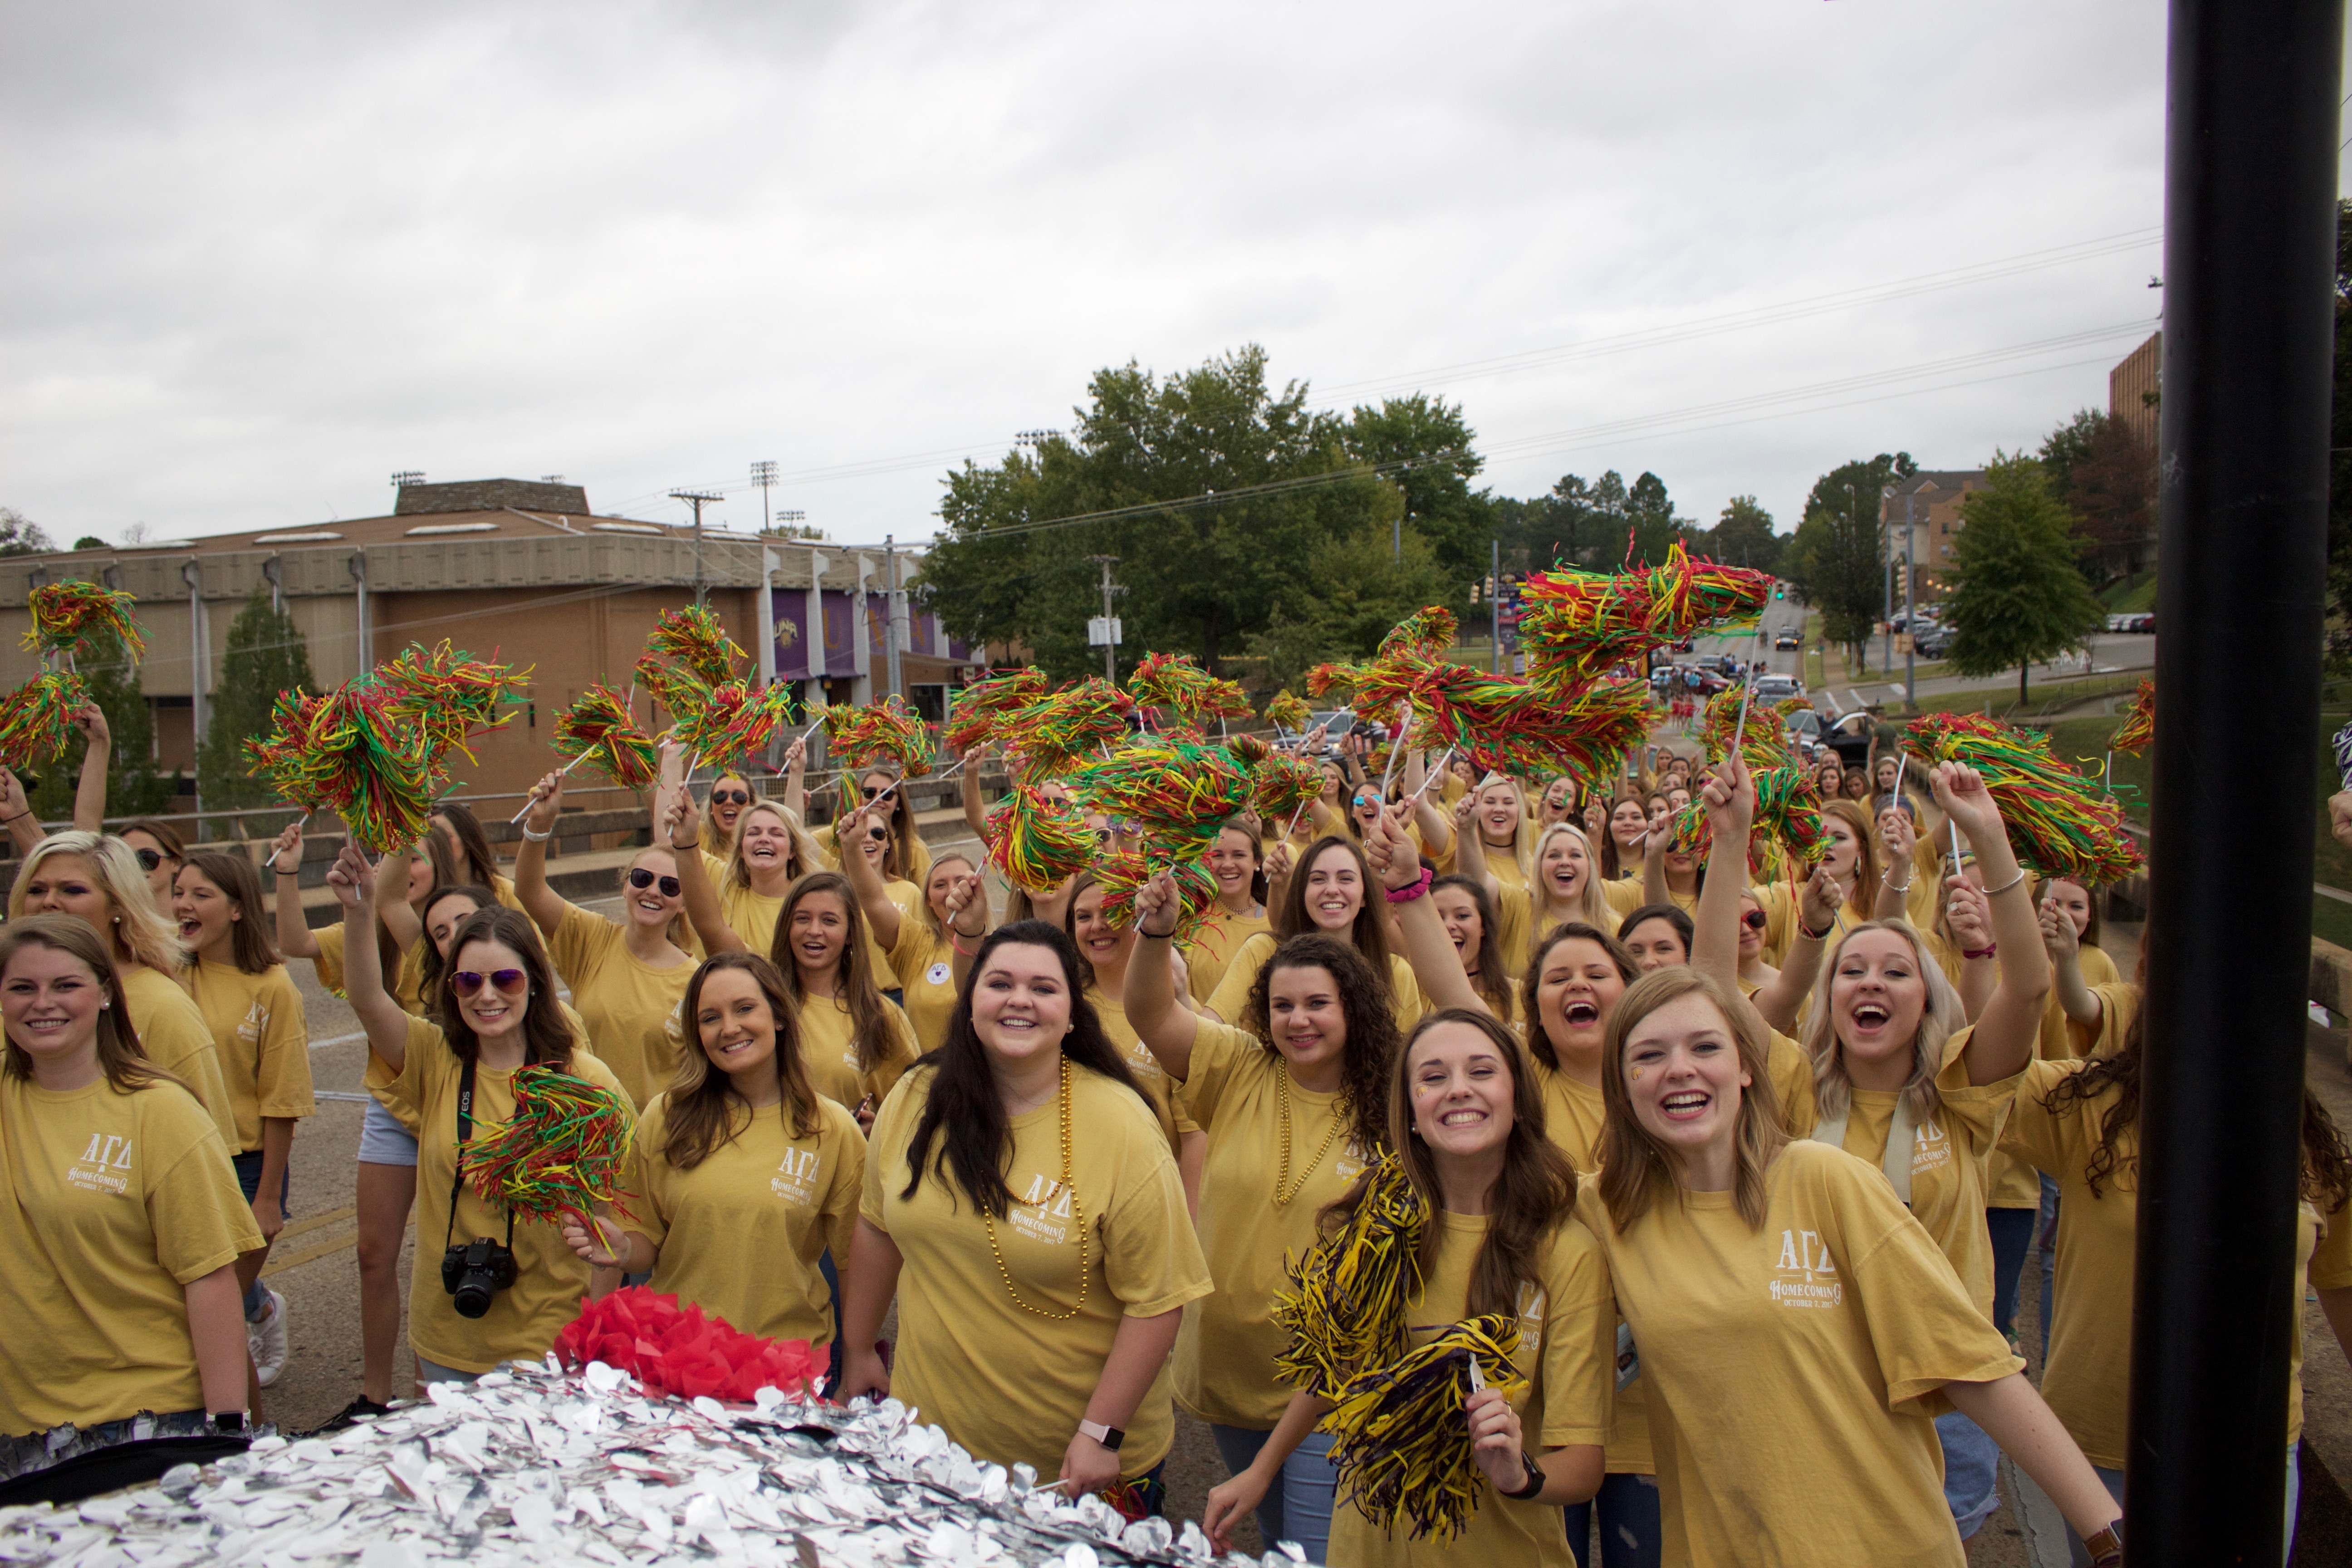 Women in yellow shirts cheering with green, red, and yellow poms during homecoming parade